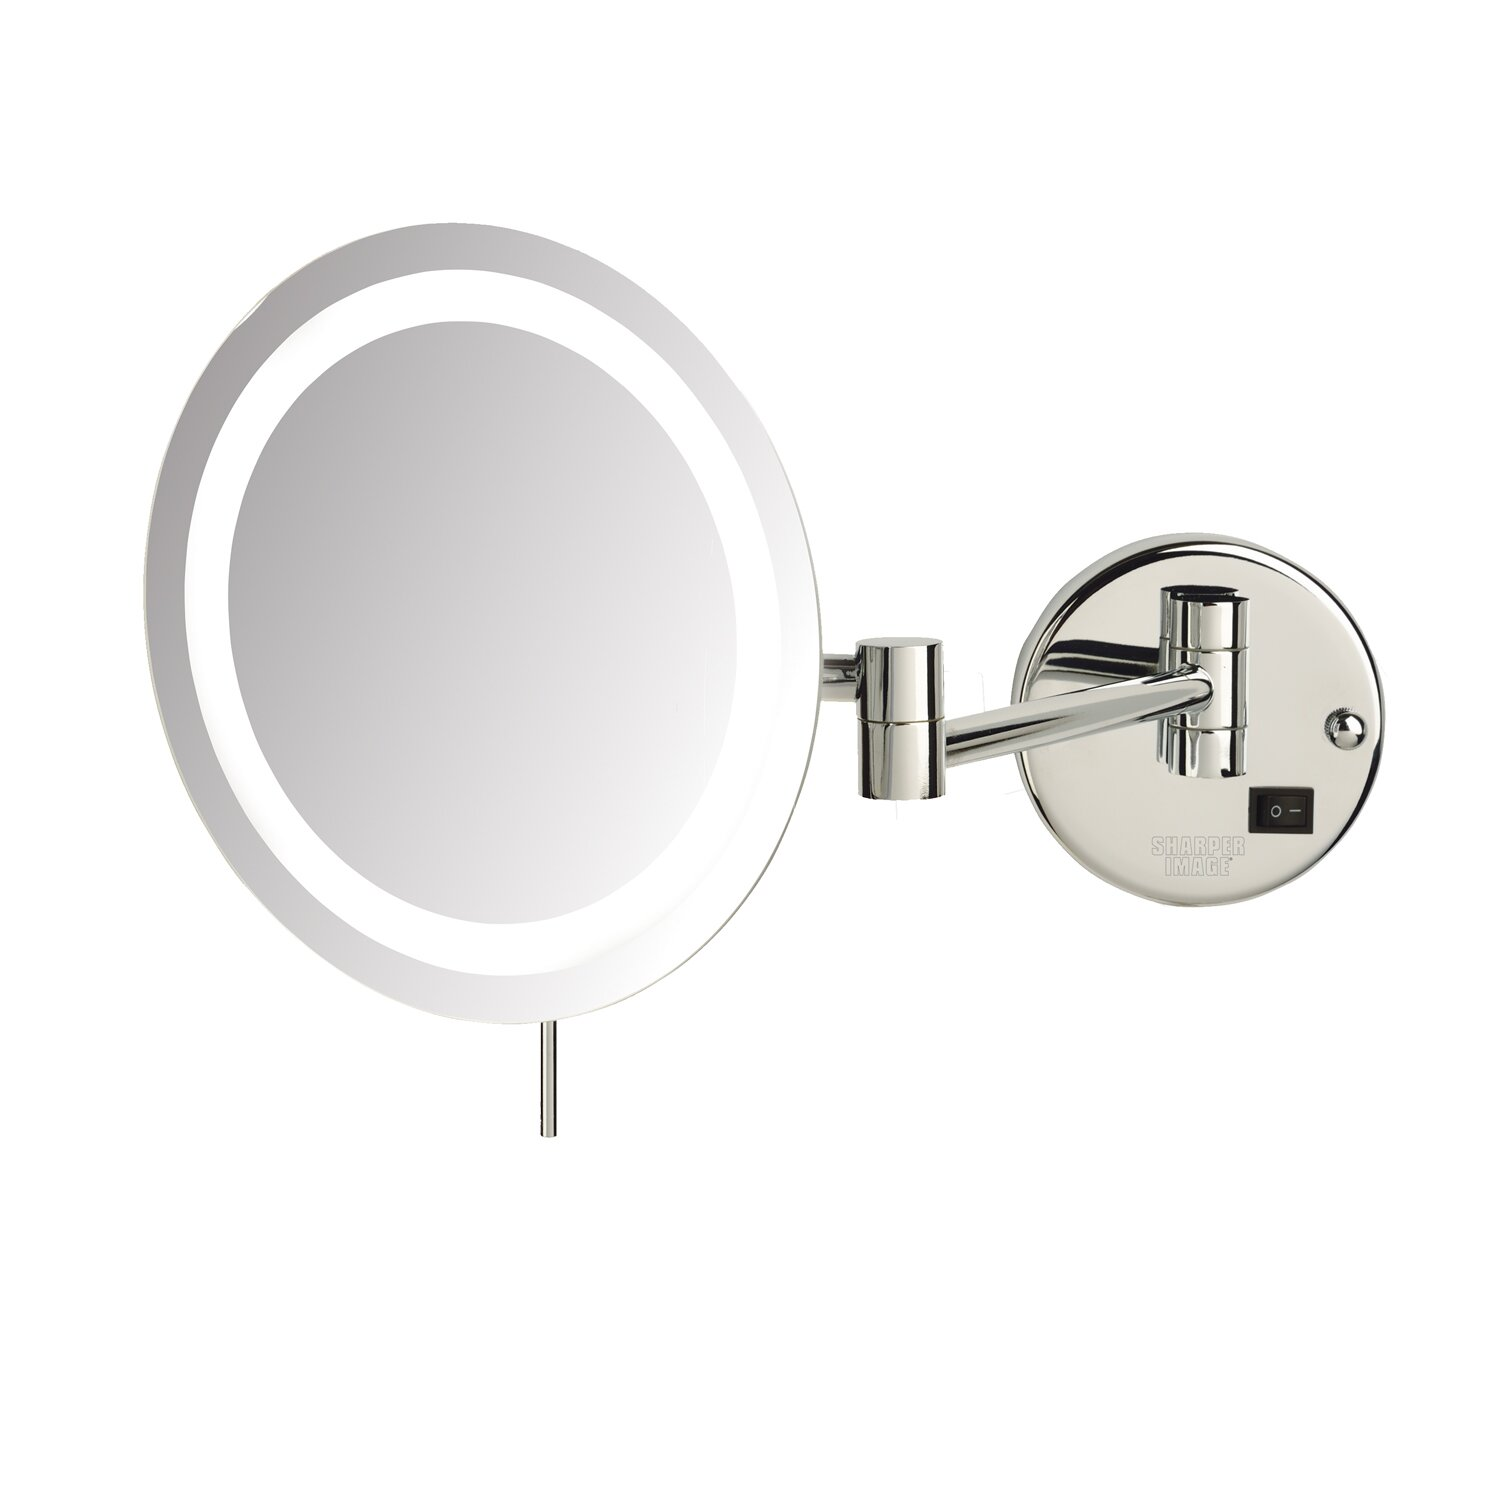 Wall mounted makeup mirror with lights - Wall Mounted Lighted Makeup Mirror Reviews Jerdon Led 8x Magnifying Wall Mount Makeup Mirror Wall